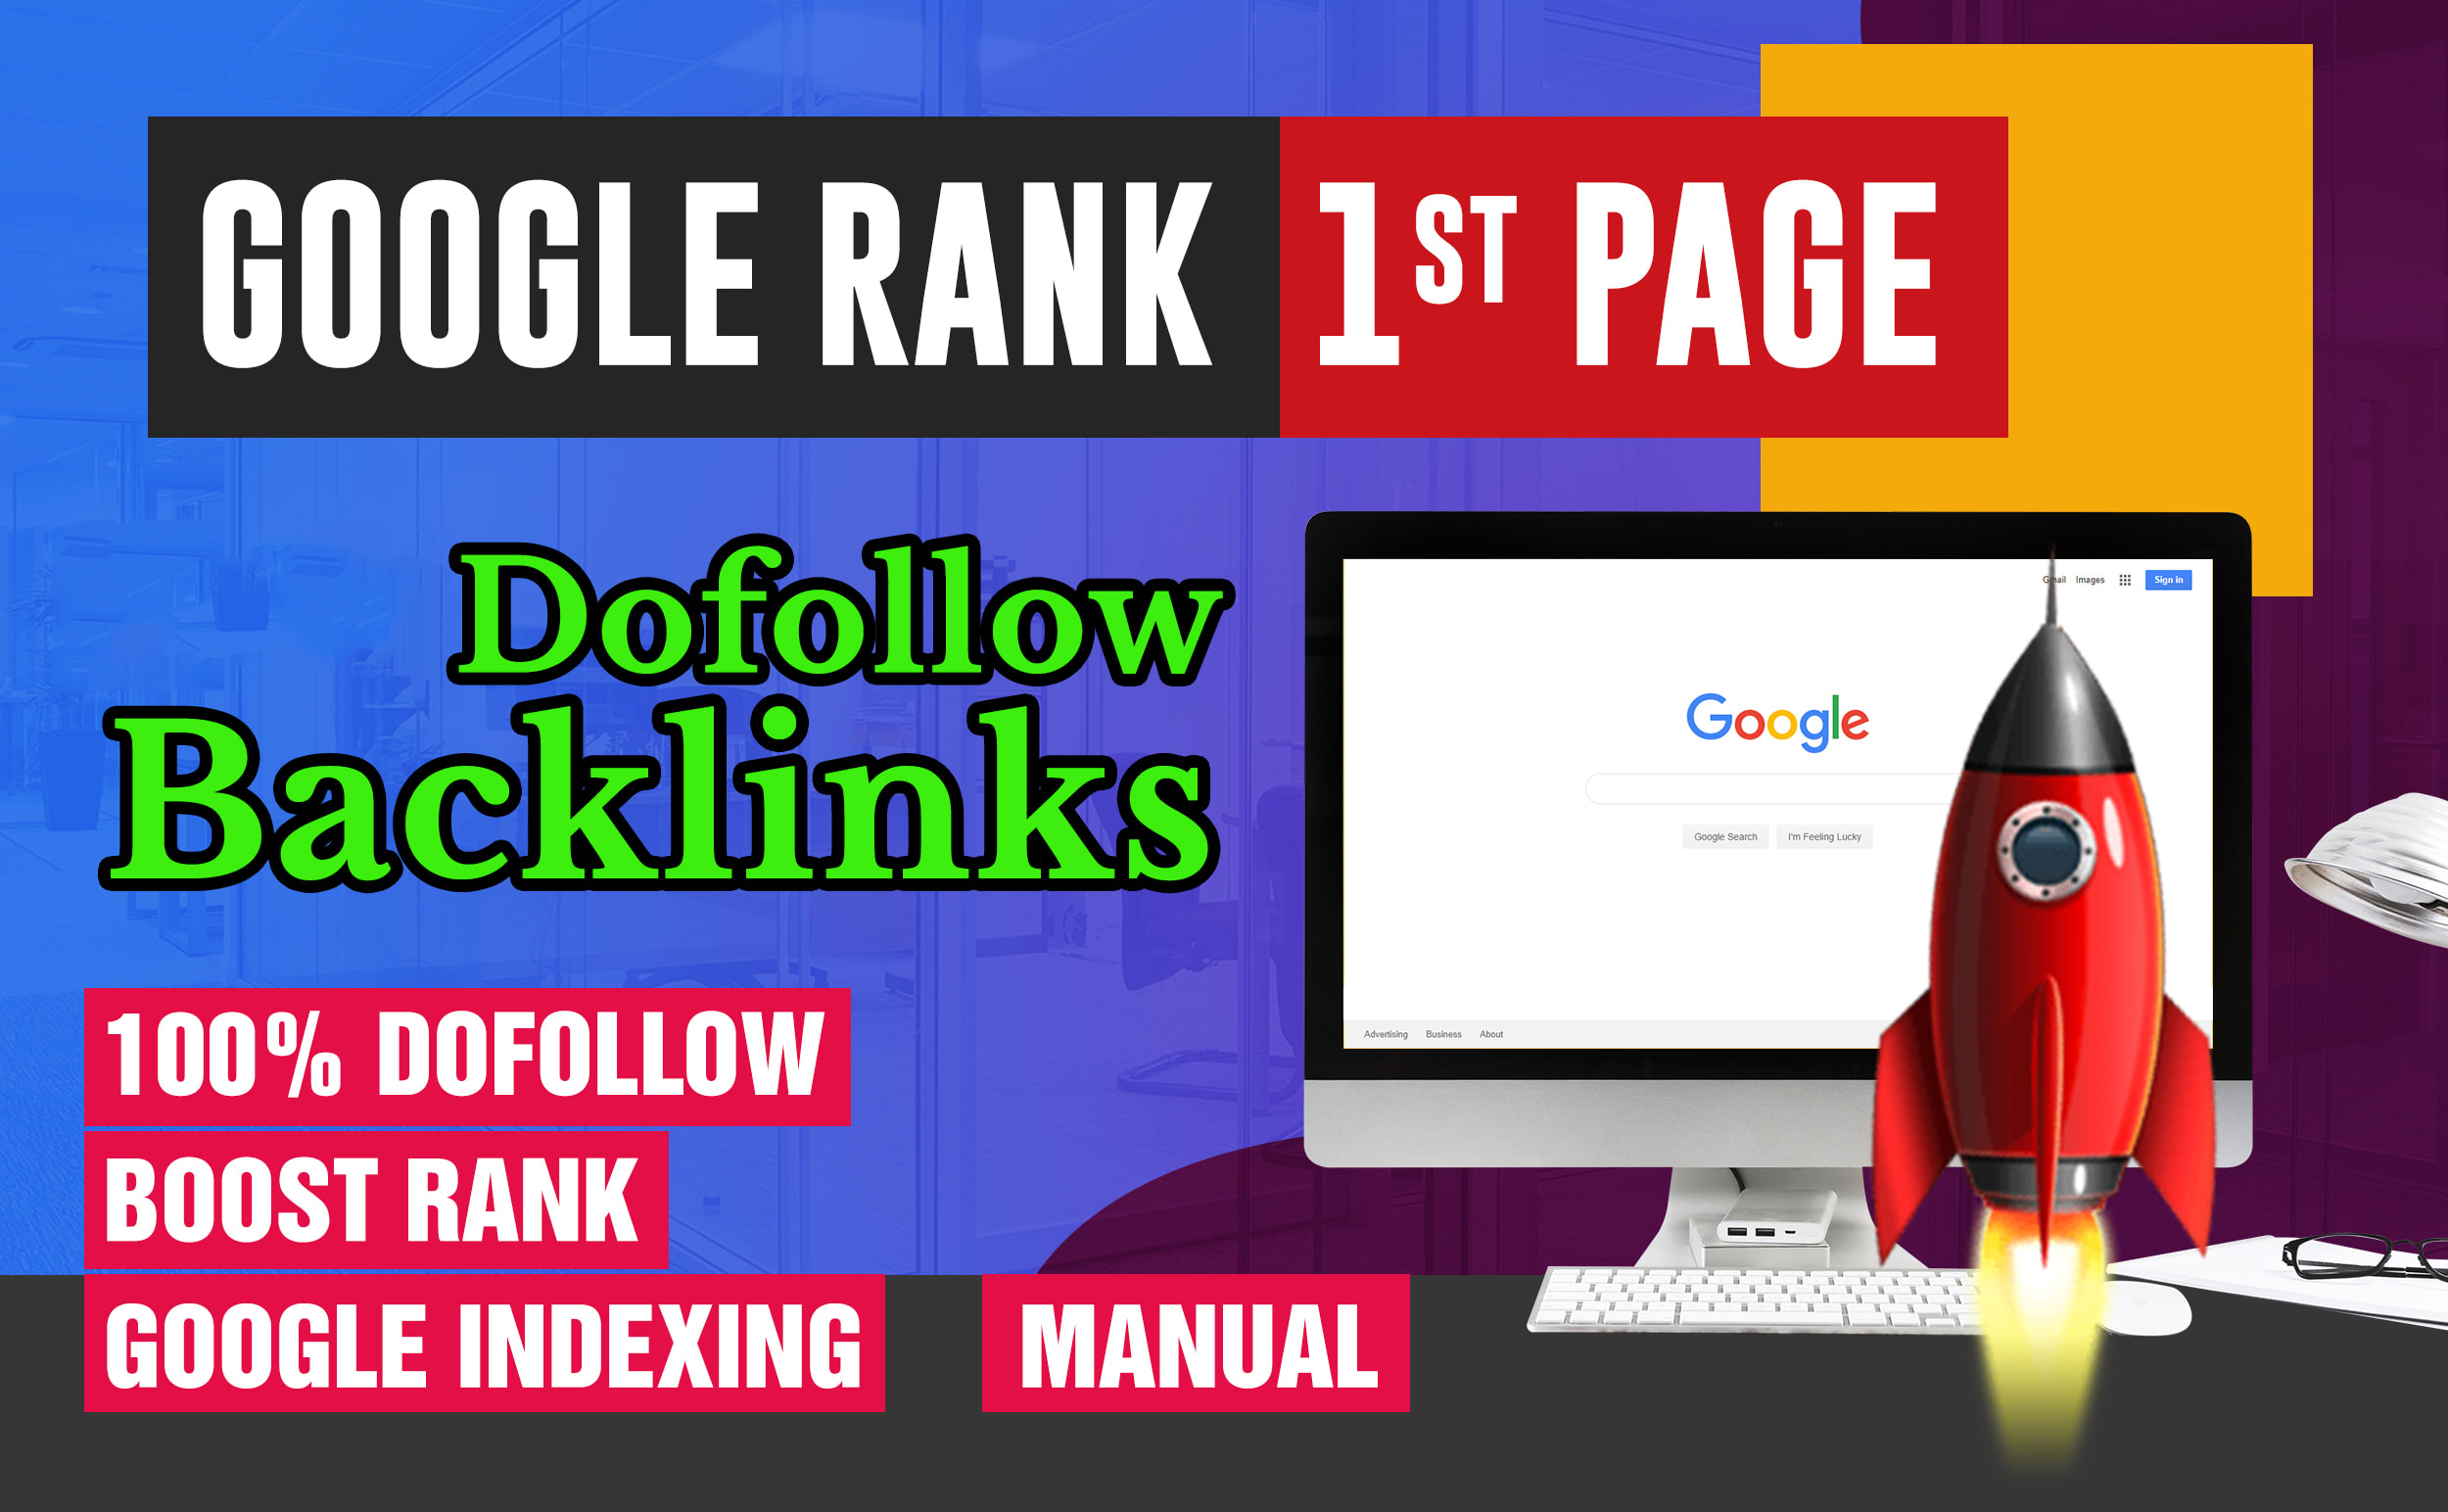 Manually 160 High PR Dofollow Backlinks from high PA DA Domains